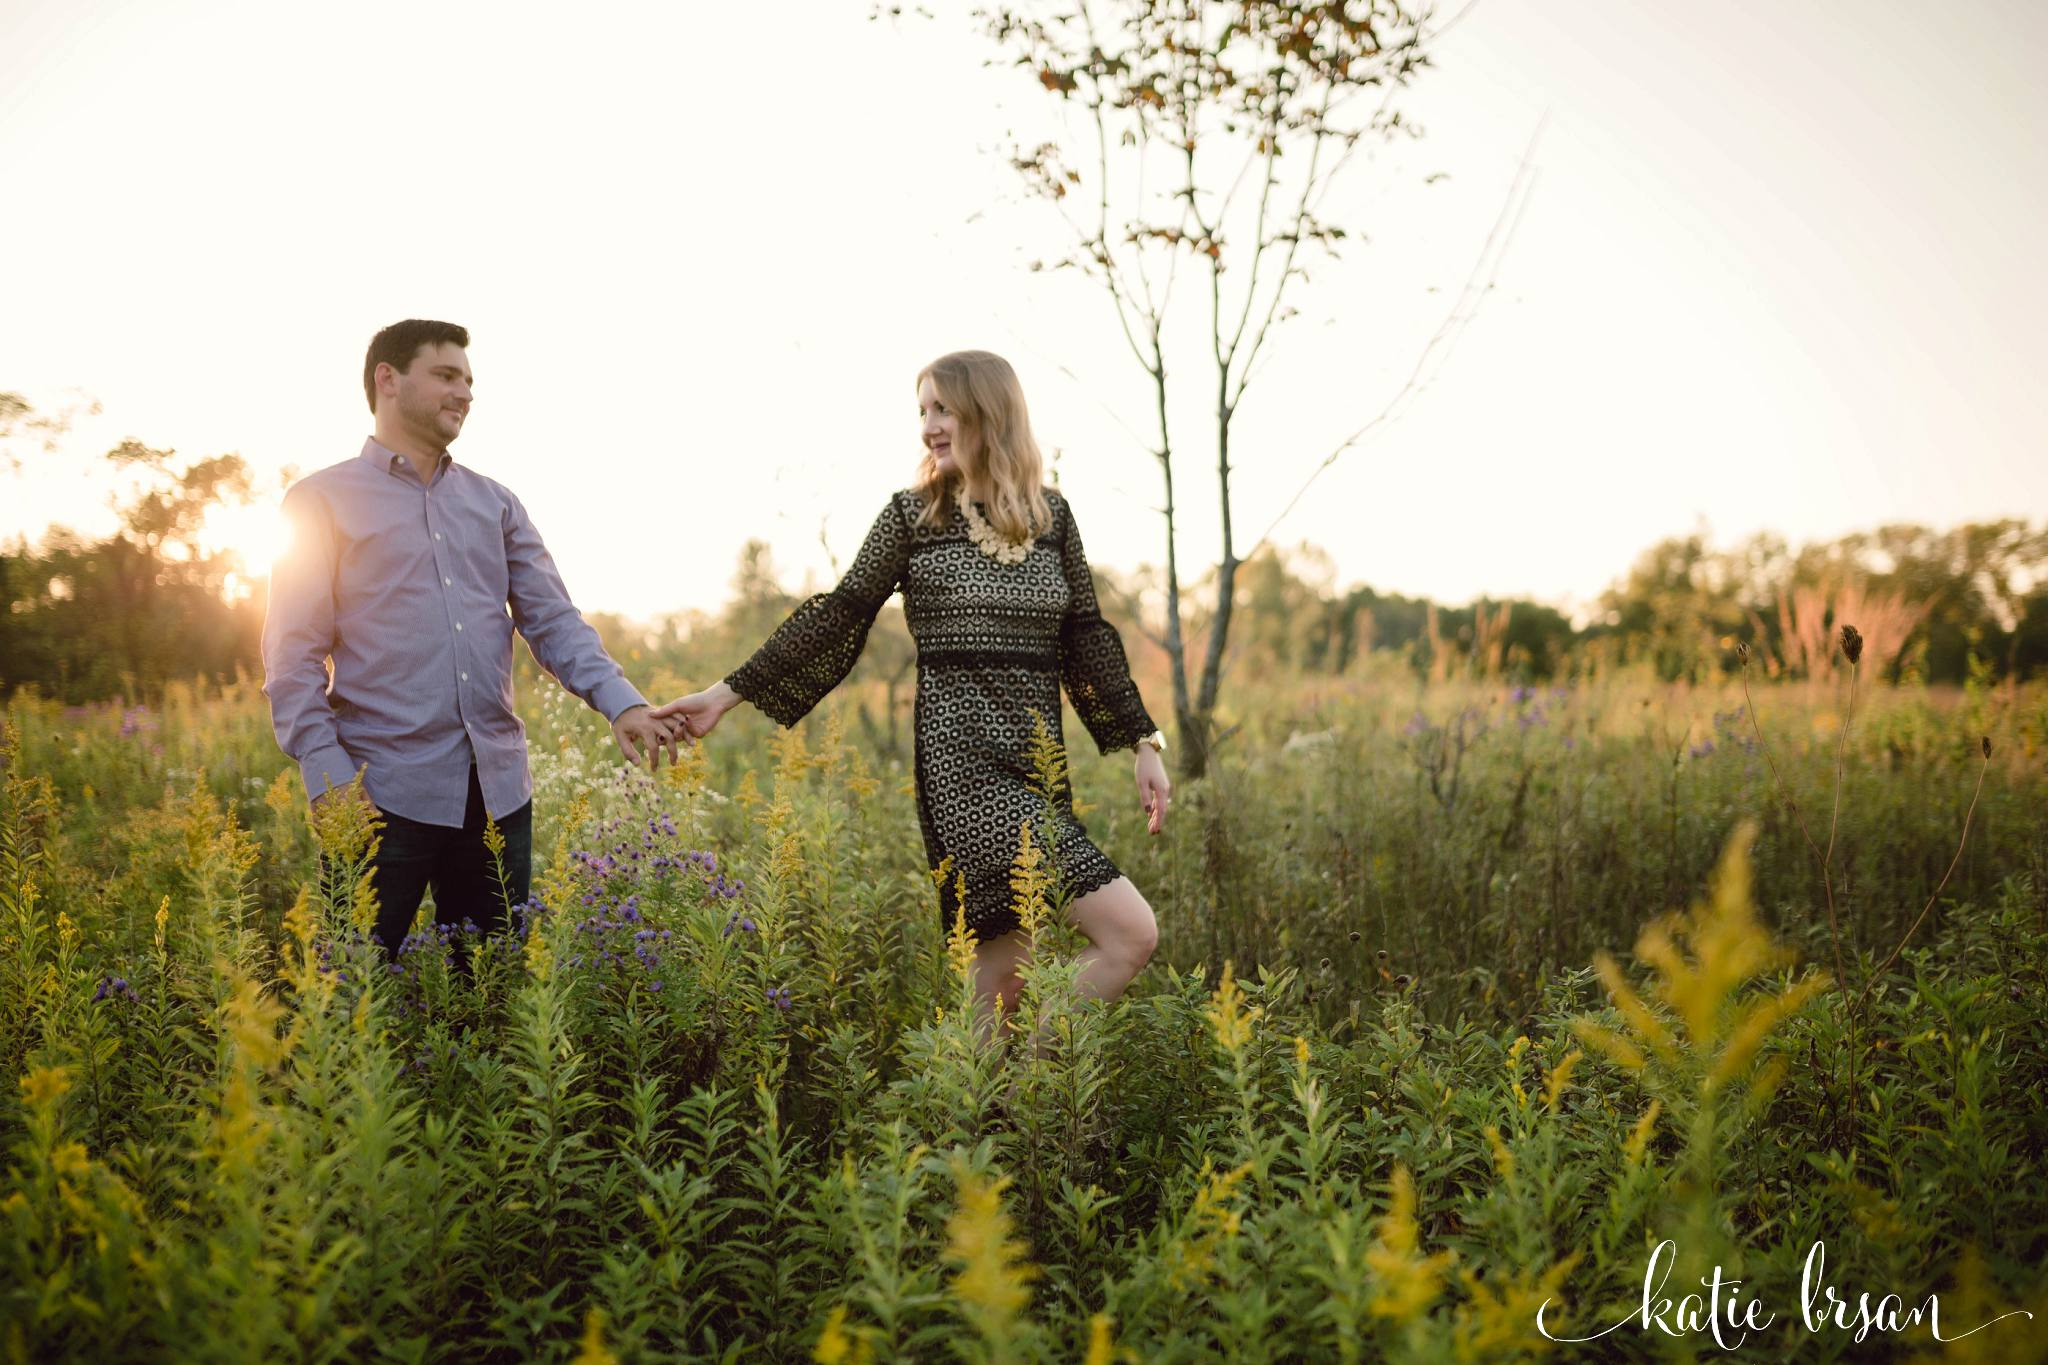 Mokena_EngagementSession_RuffledFeathers_Wedding_0958.jpg